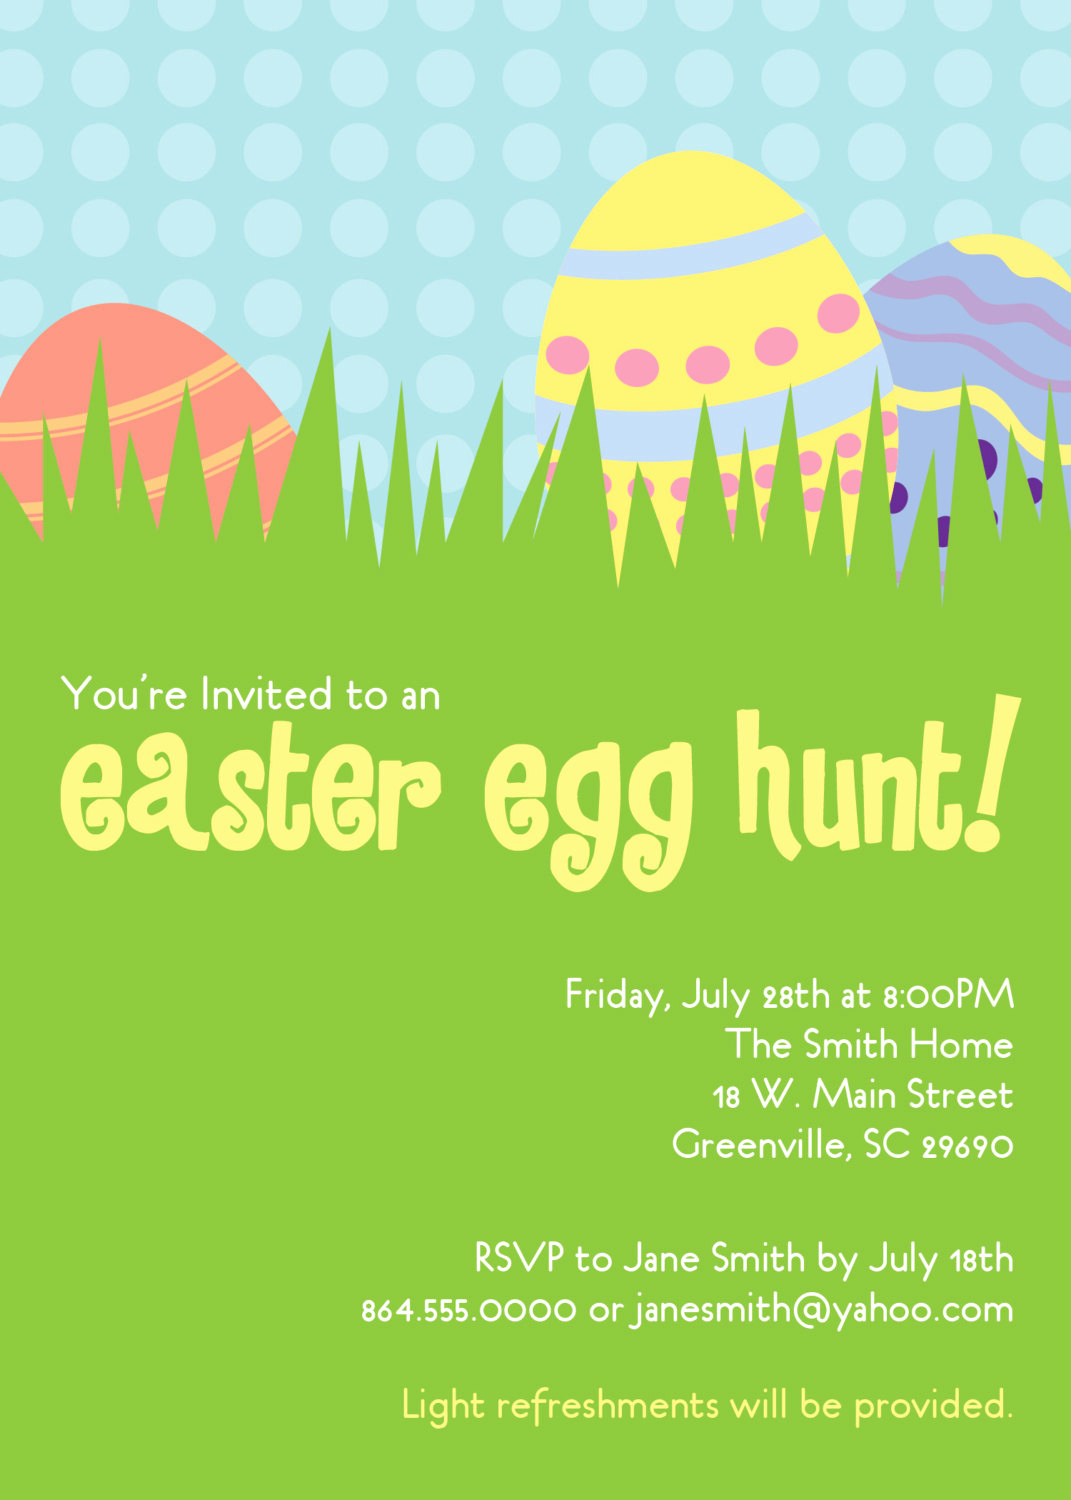 Easter Egg Hunt Invitation Lovely Easter Egg Hunt Invitations Party Dinner Birthday Get